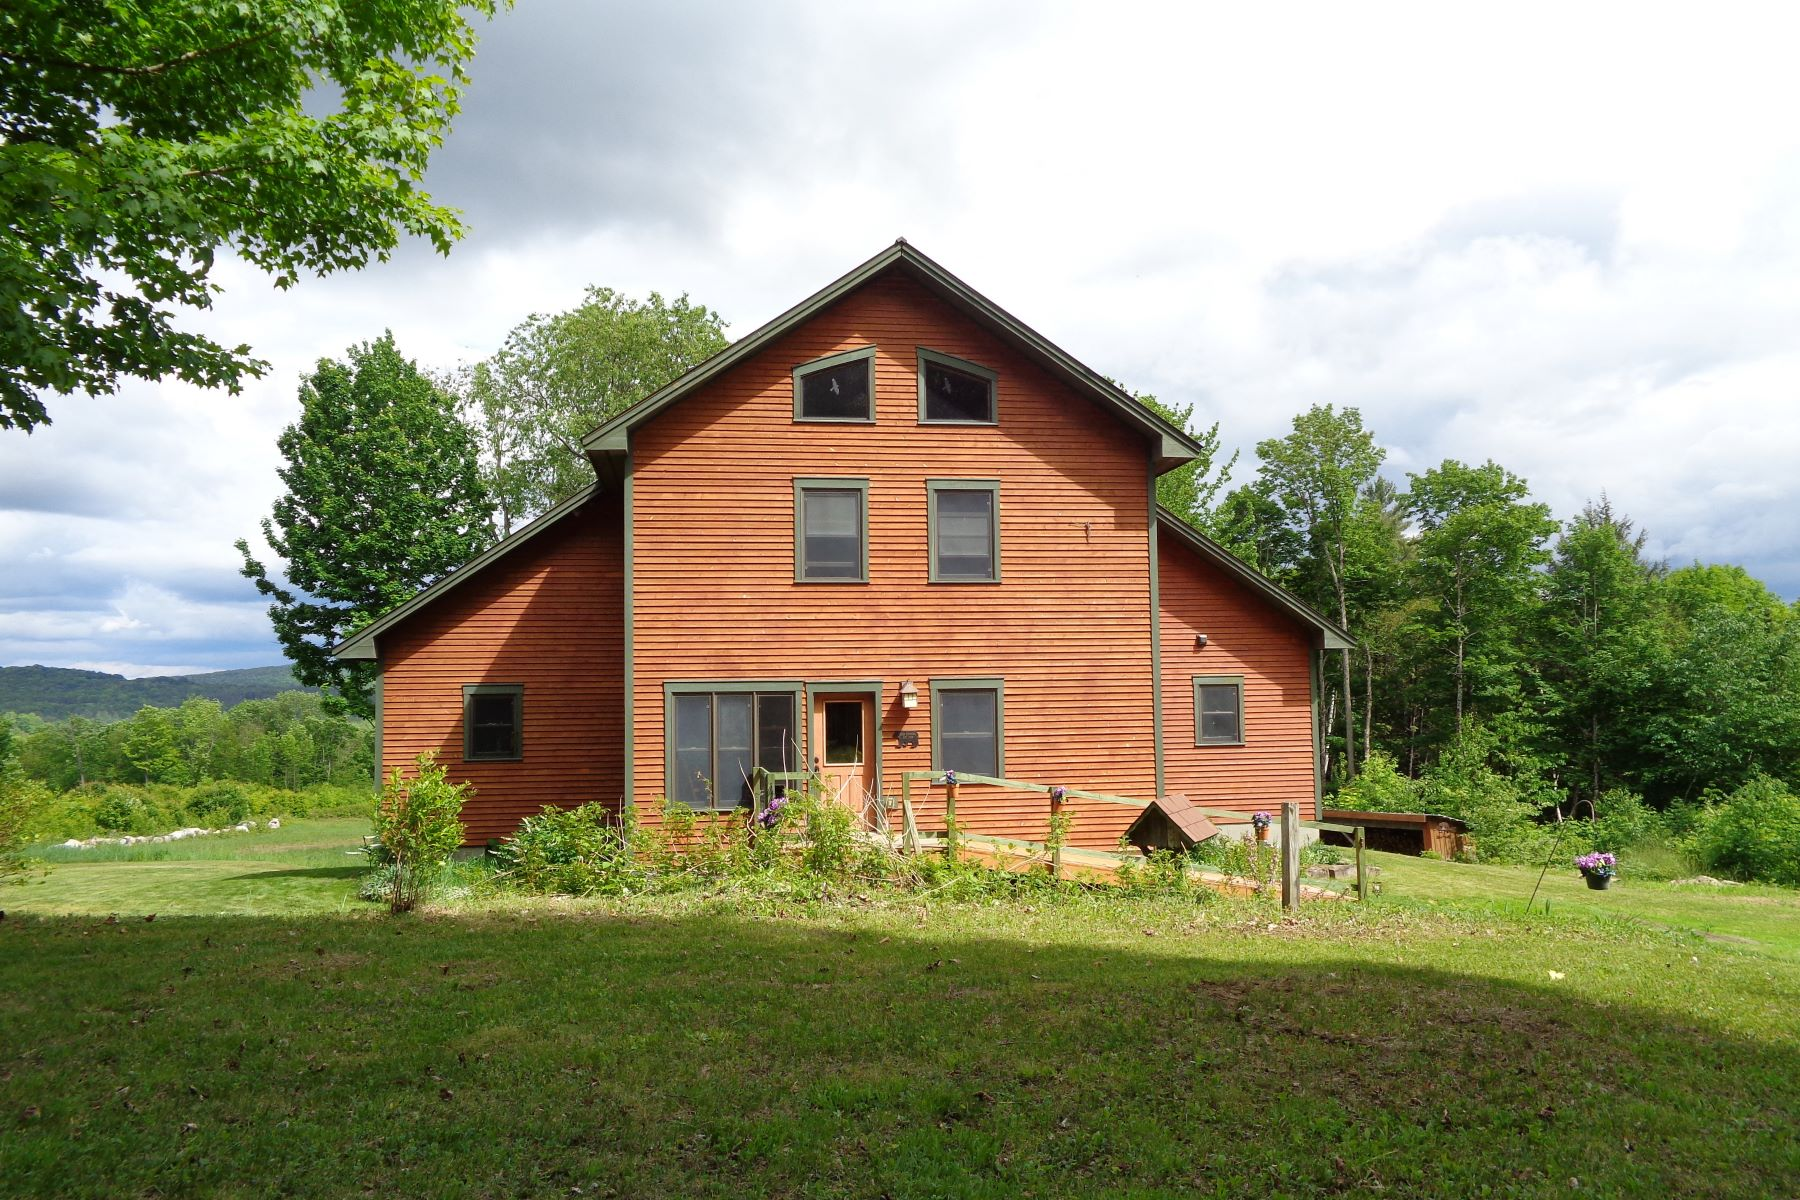 Single Family Home for Sale at Two Bedroom Craftsman in Groton 412 North County Rd Groton, Vermont 05046 United States